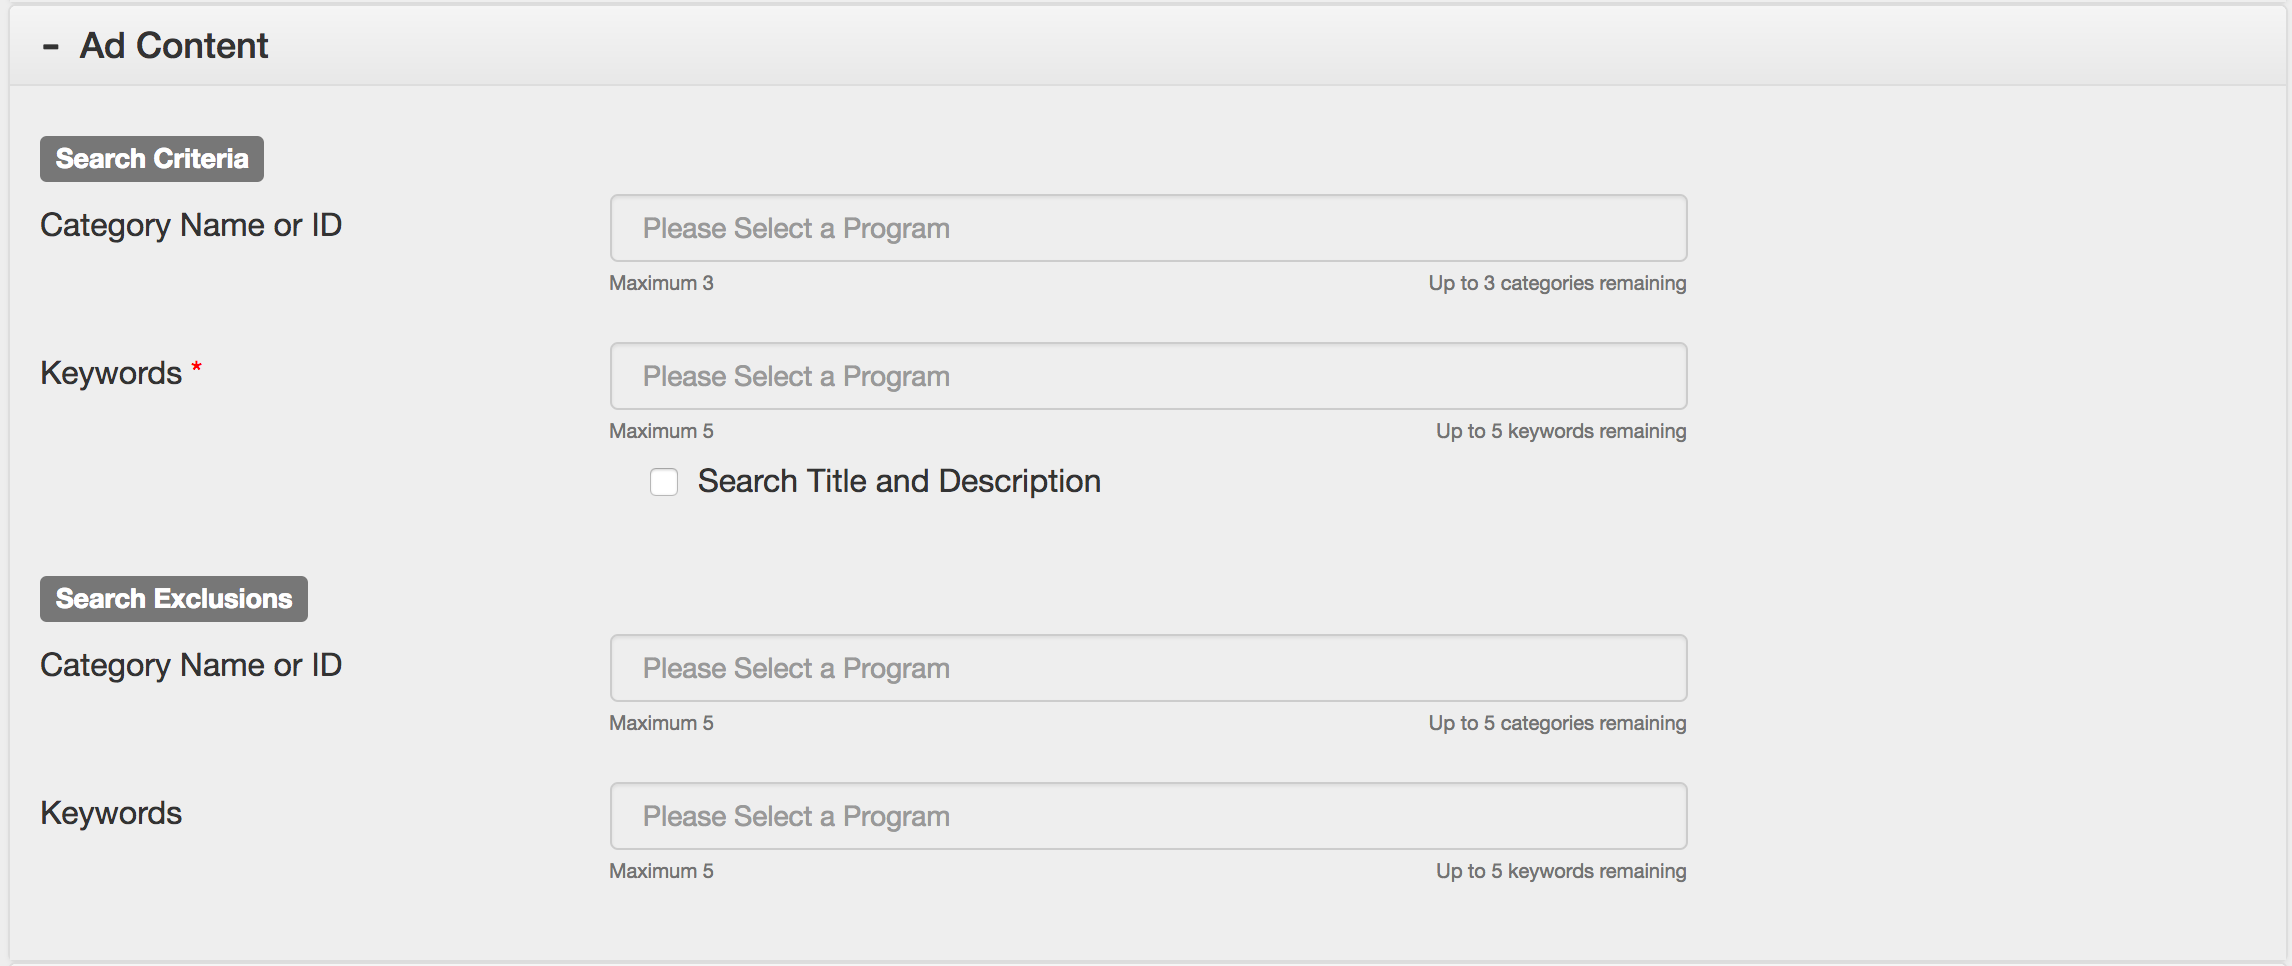 Search Criteria and Exclusions